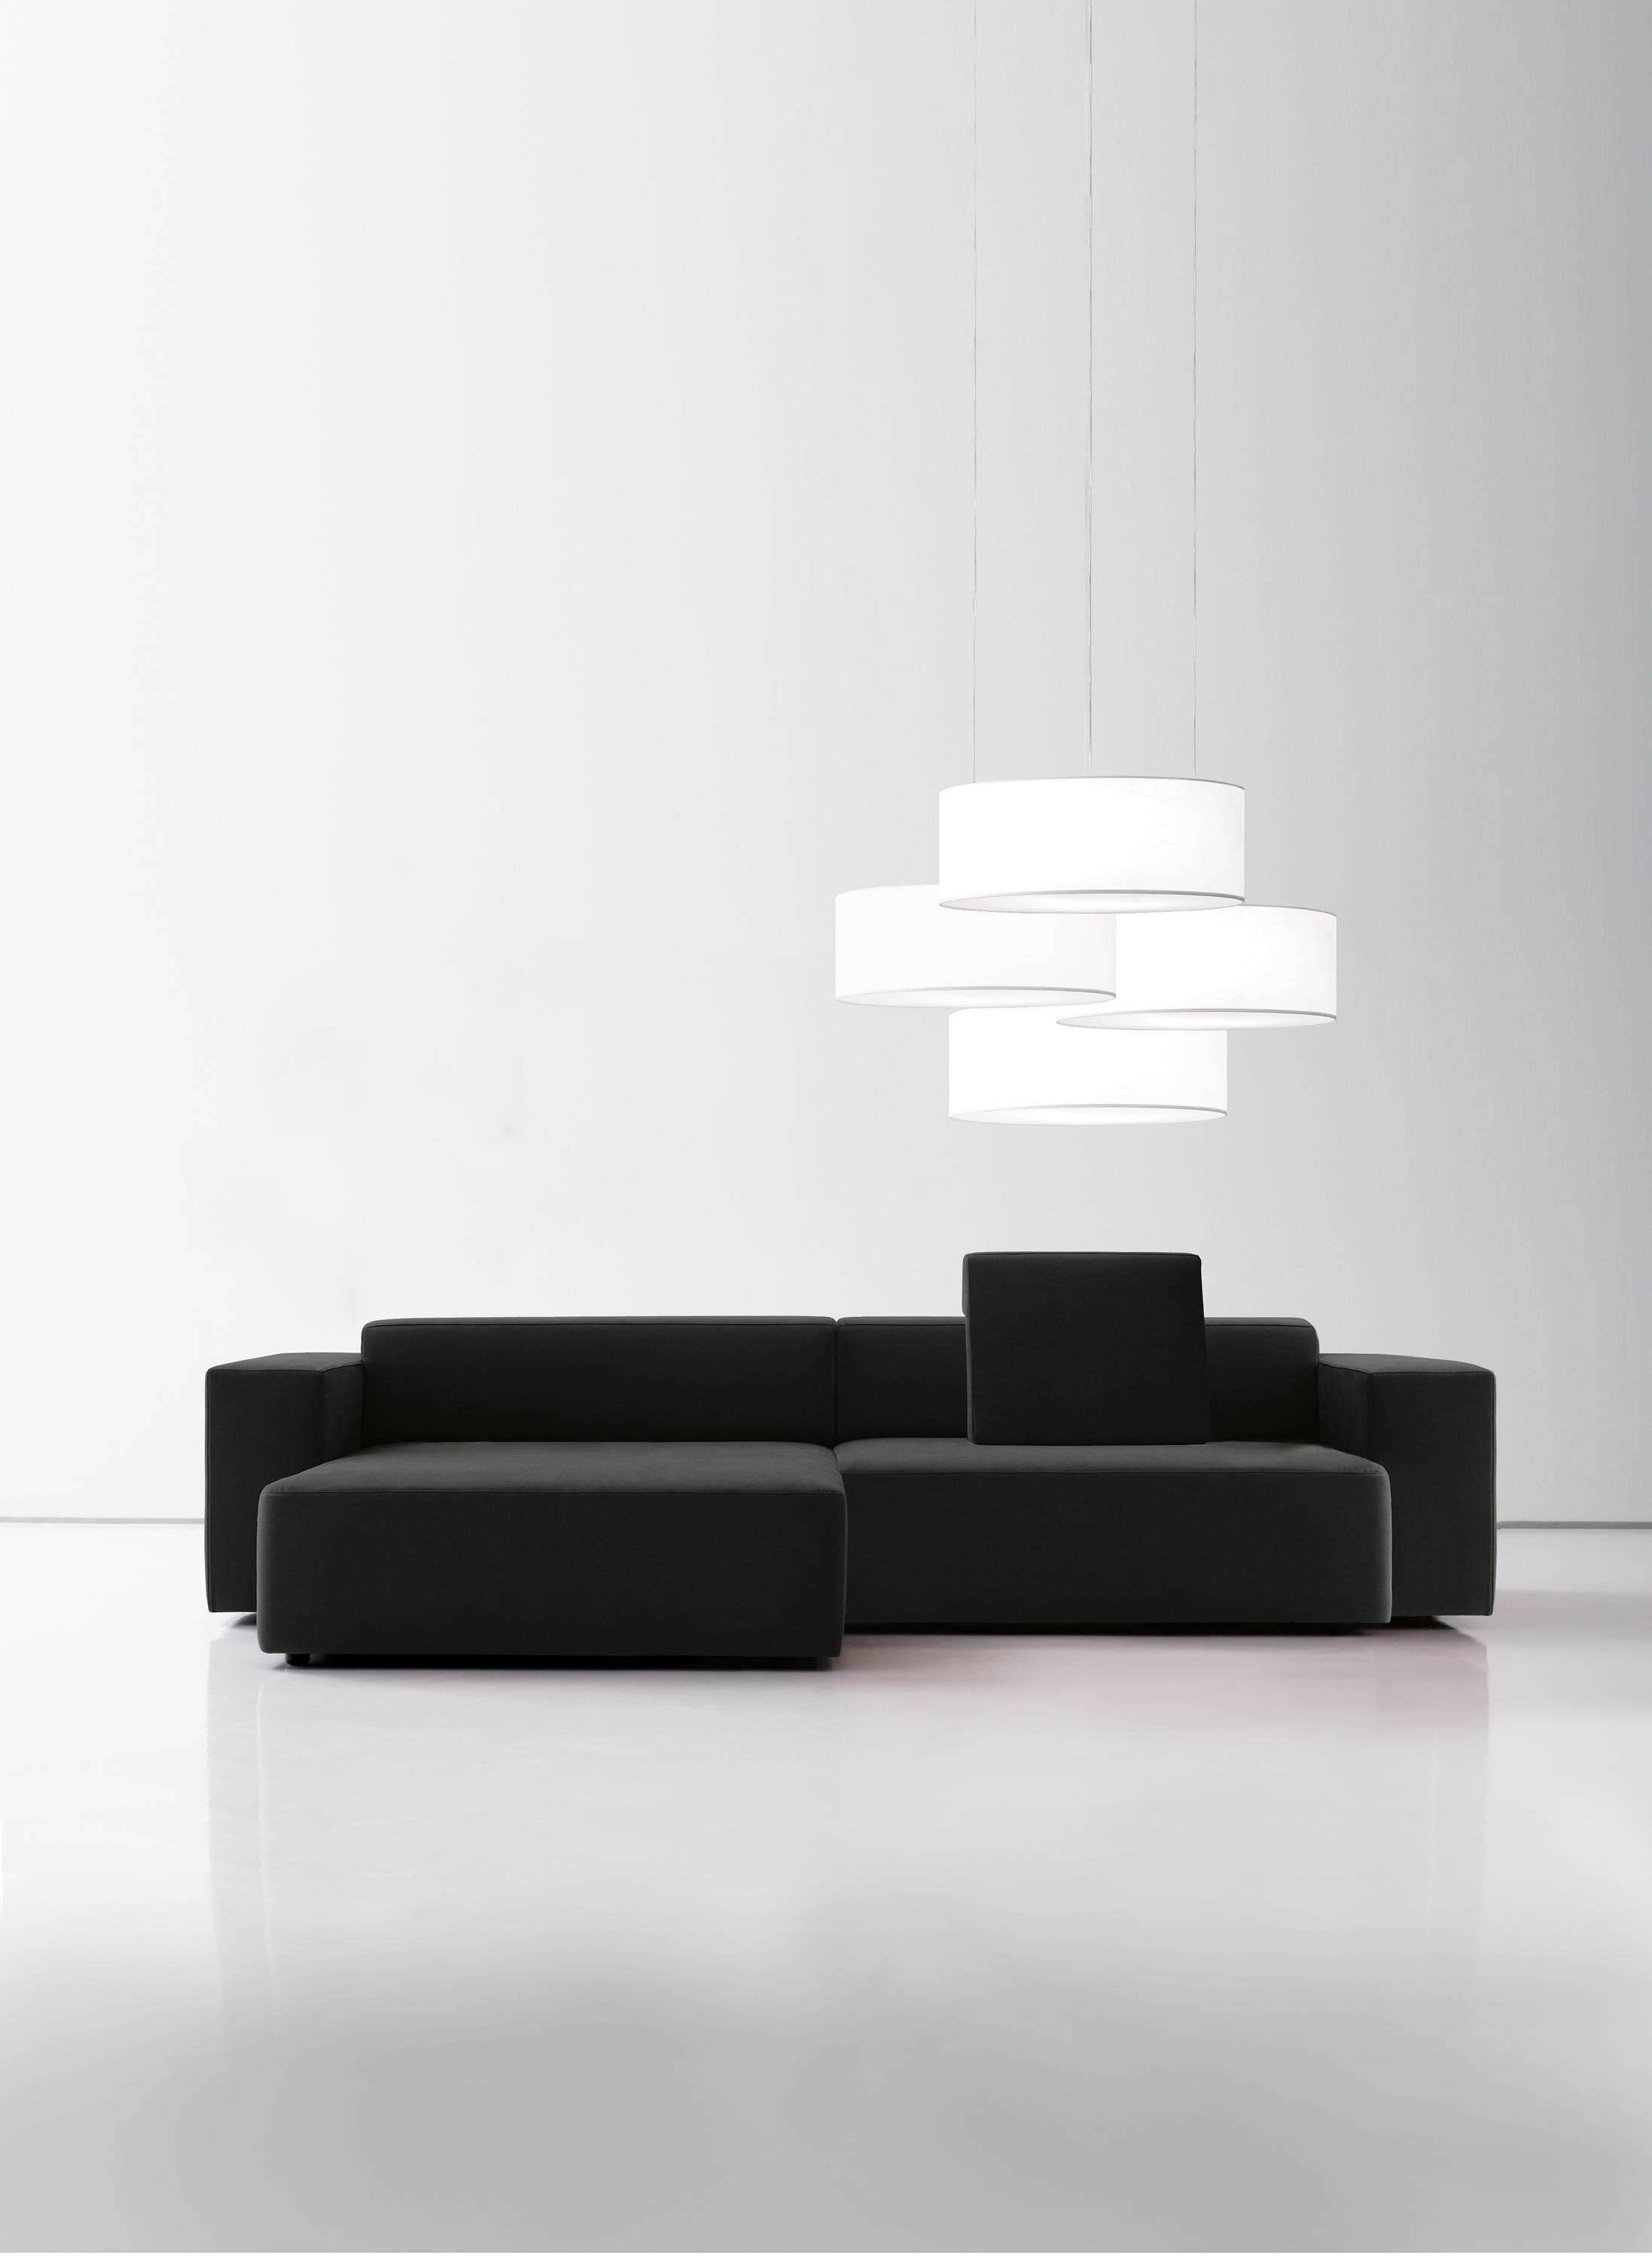 Sax lounge sofas from sancal architonic - Sofas sancal ...